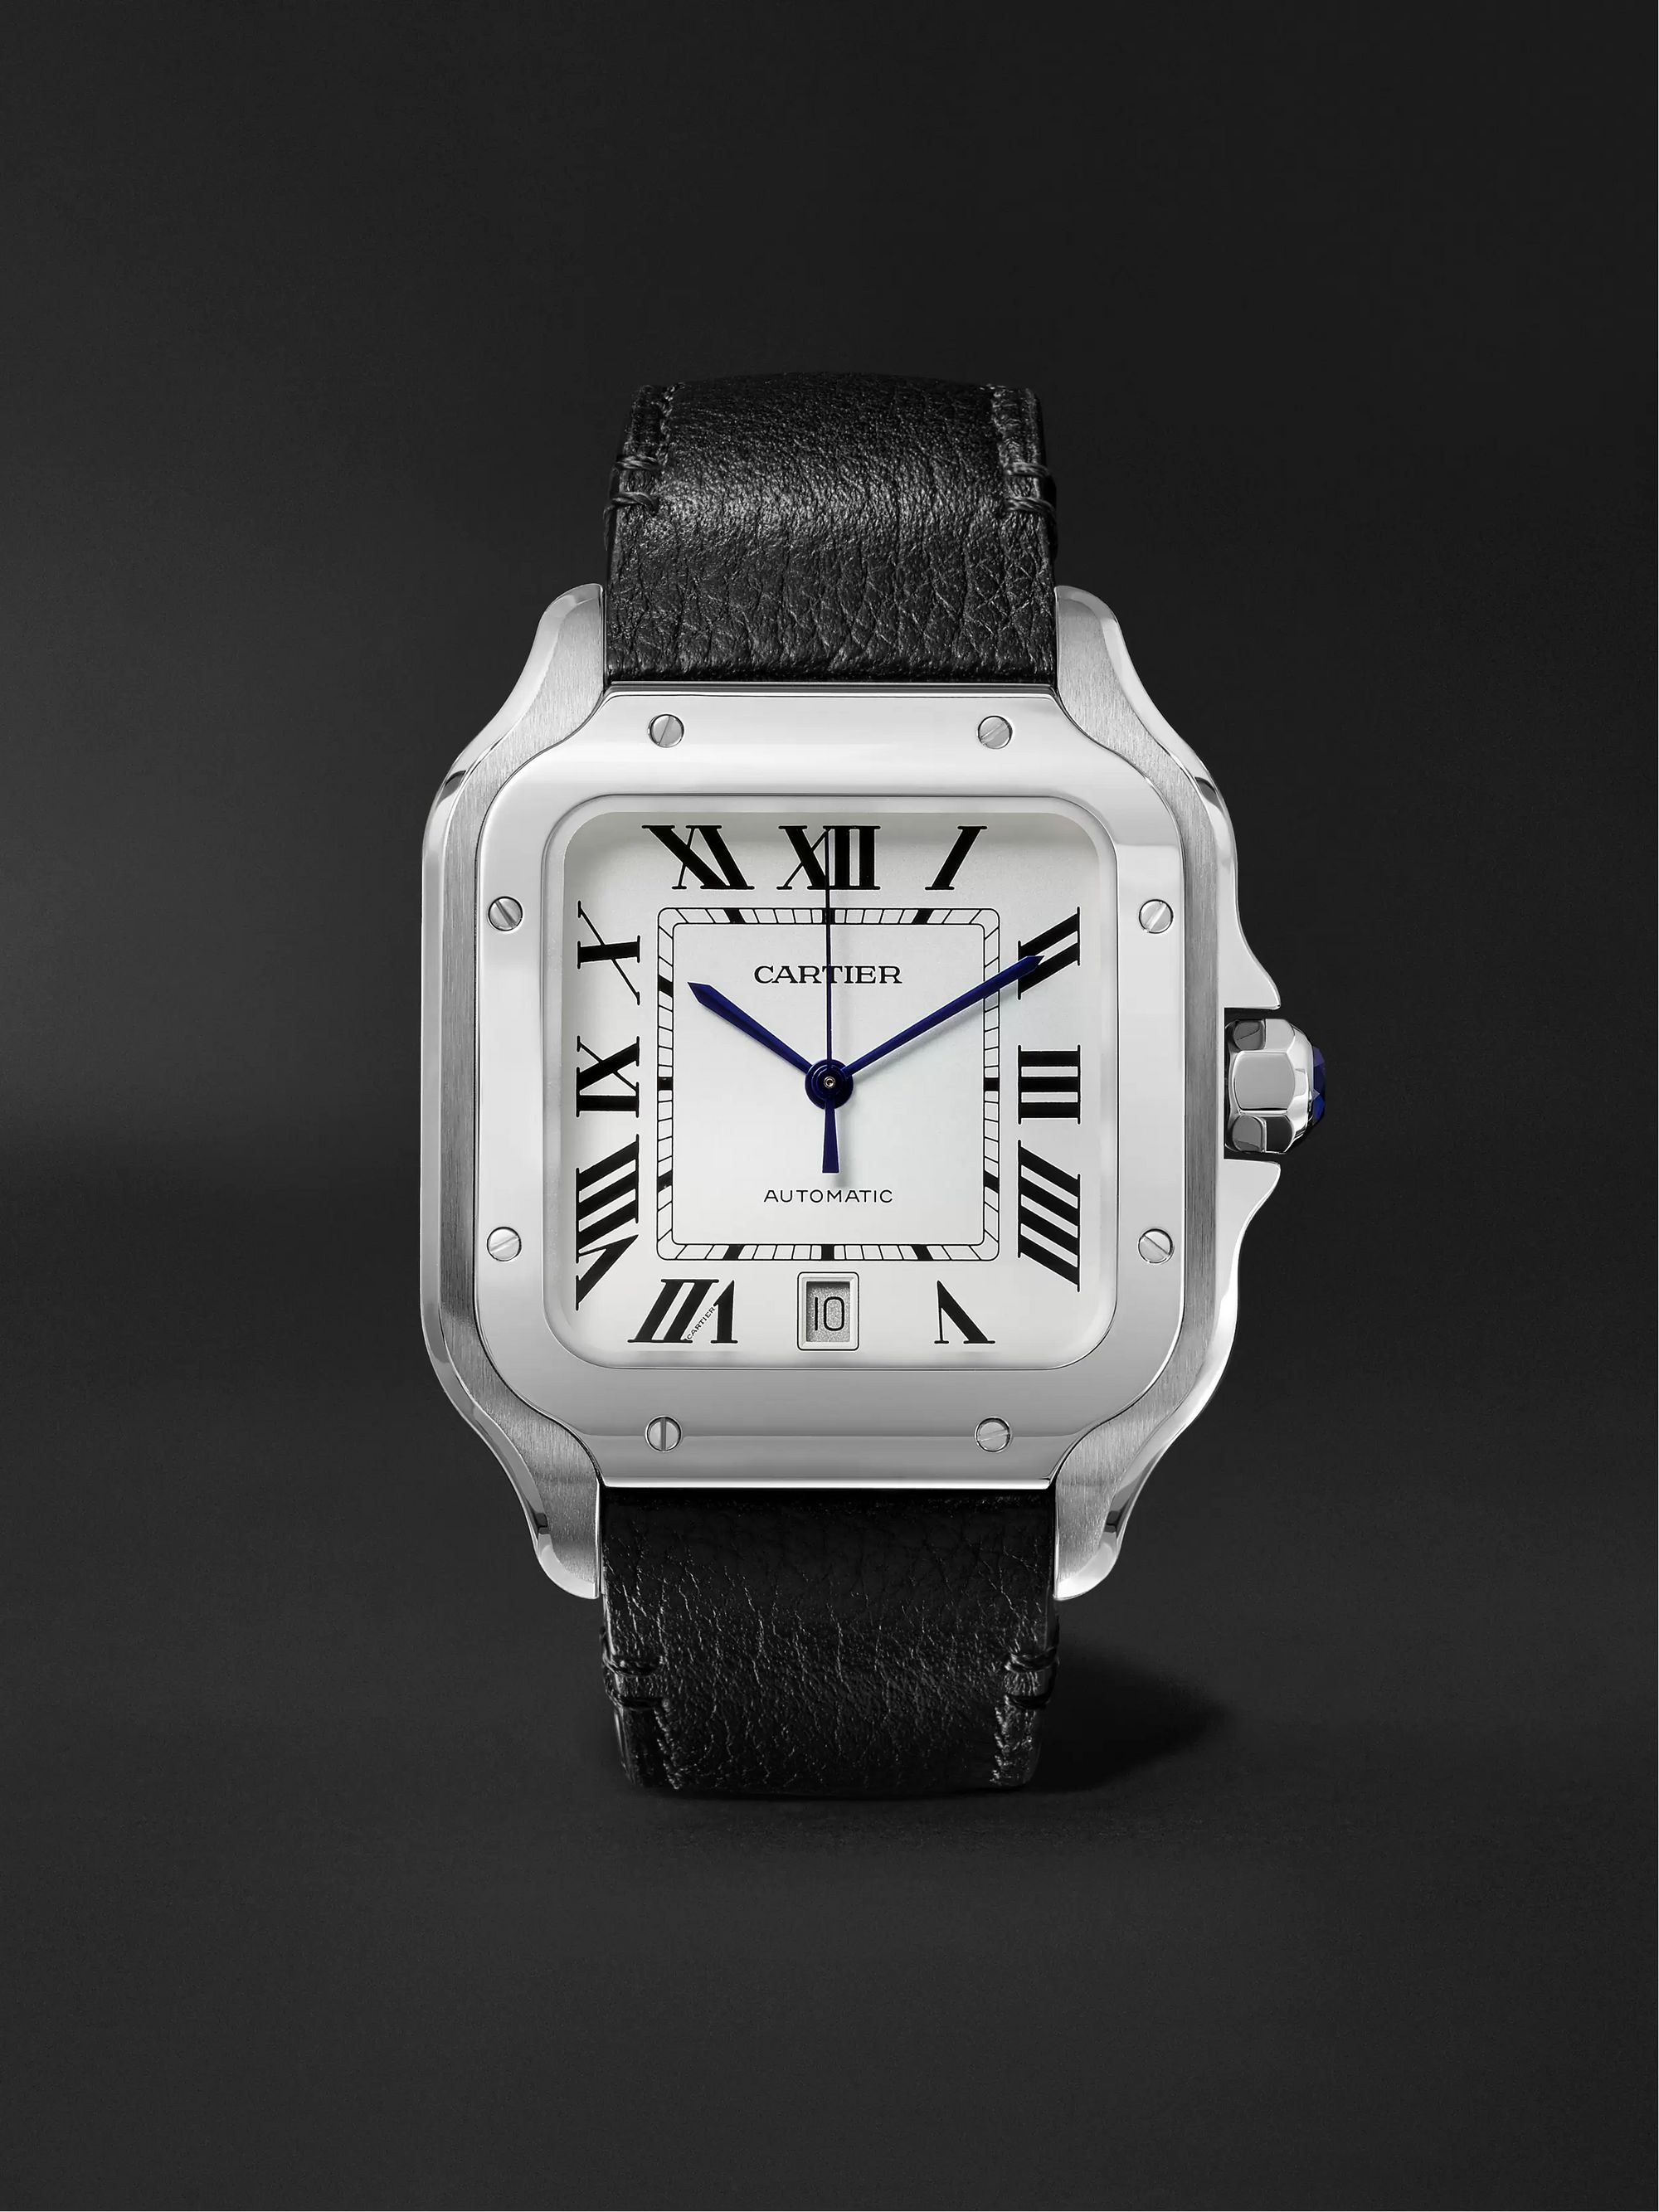 Santos 39.8mm Interchangeable Stainless Steel And Leather Watch, Ref. No. Crwssa0009 by Cartier